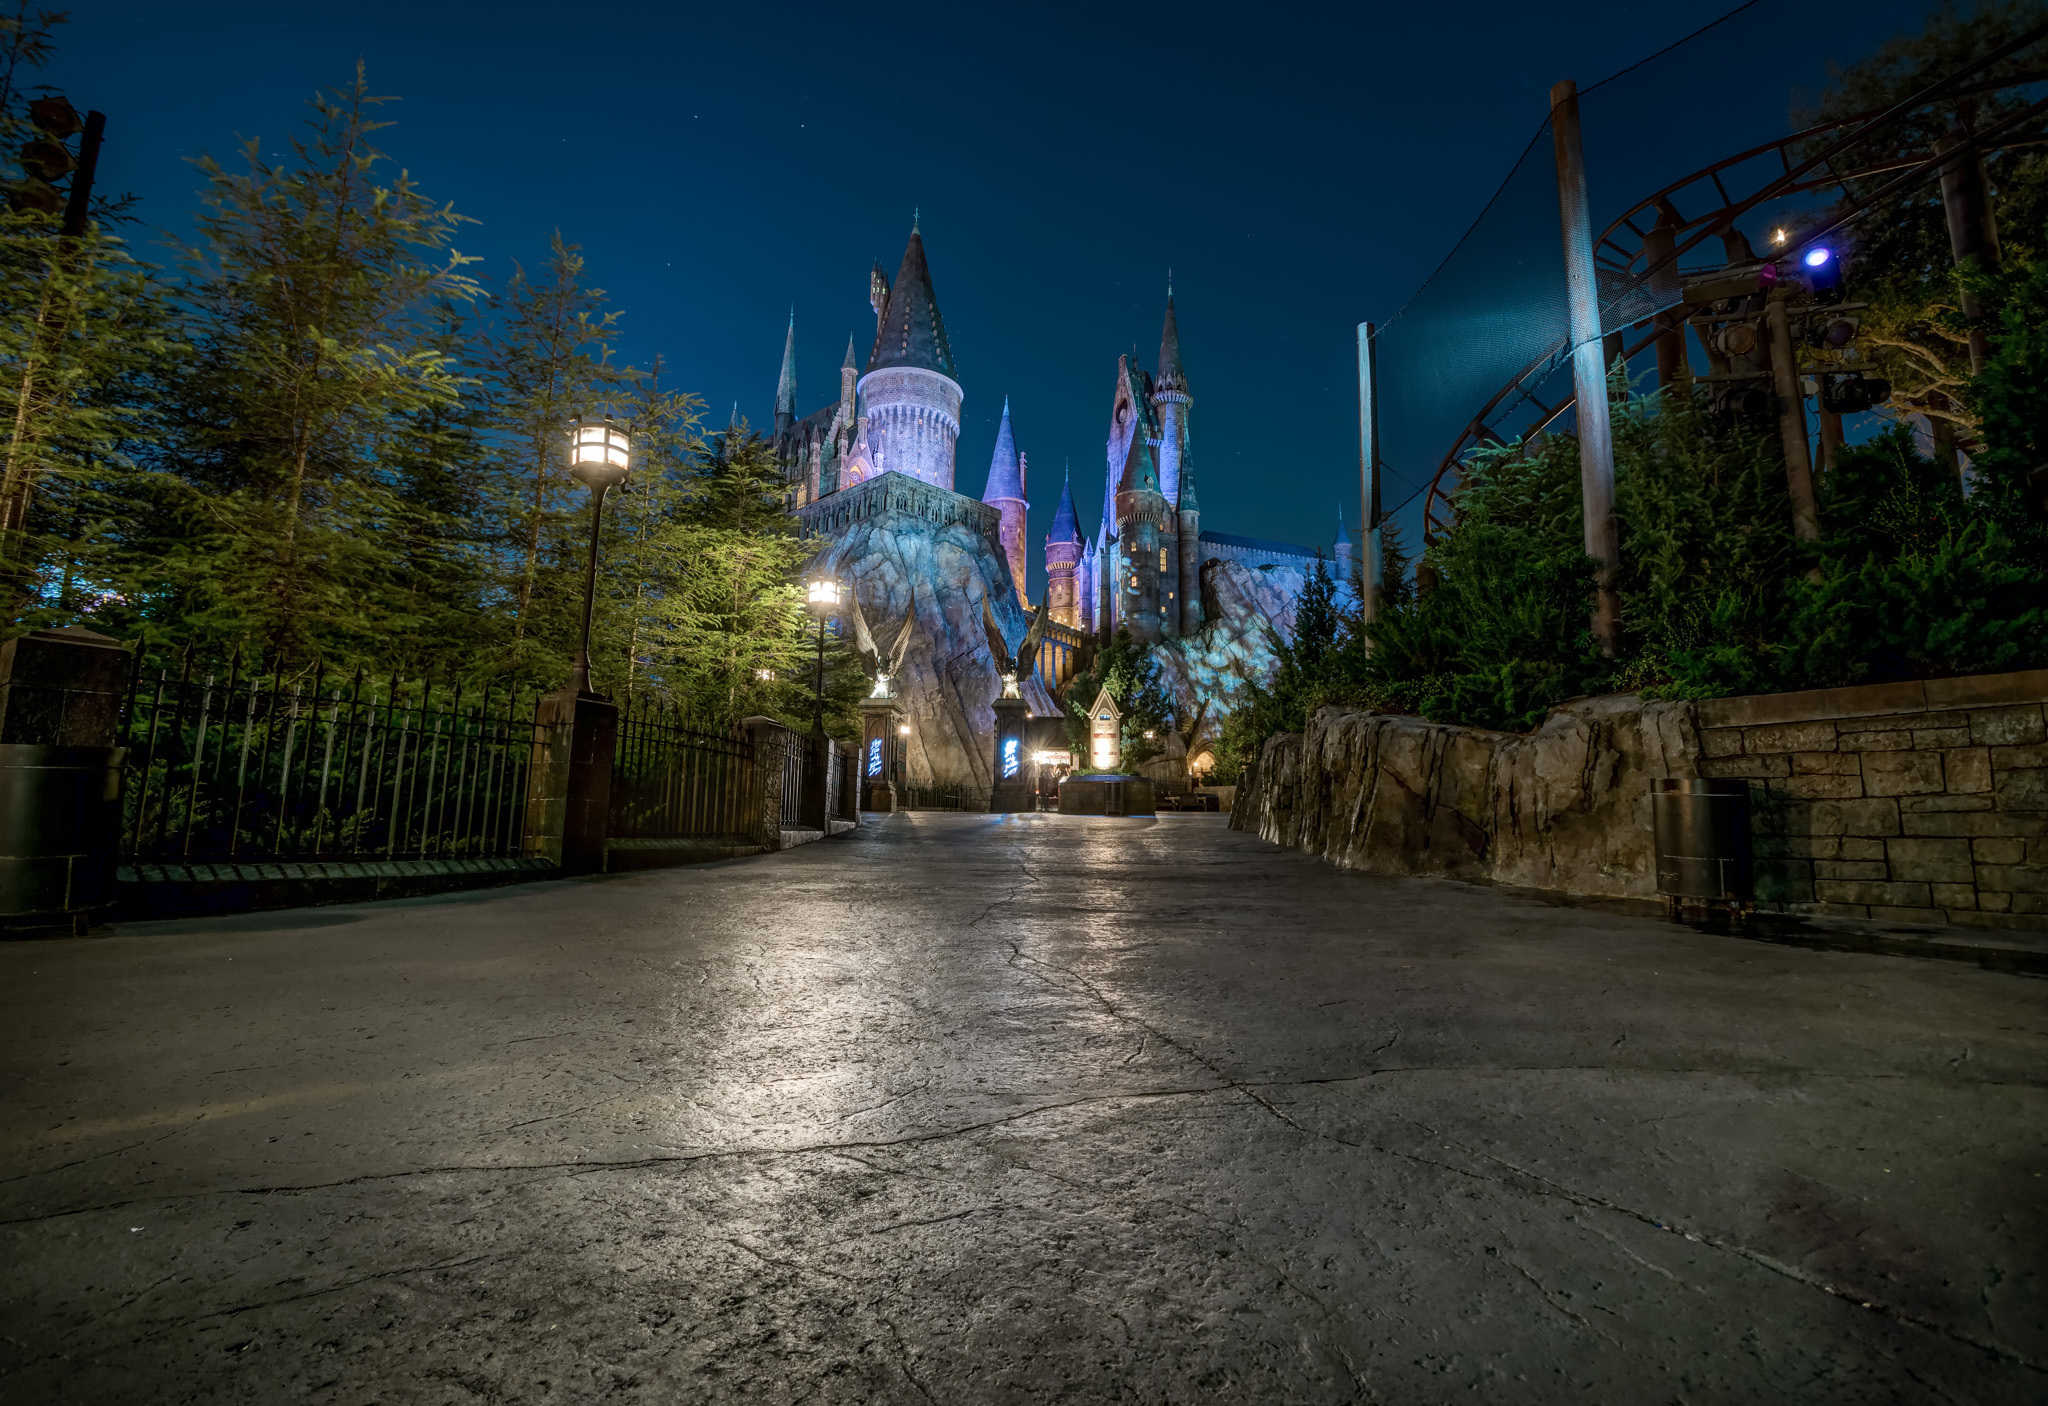 6 photos of an empty Wizarding World at night